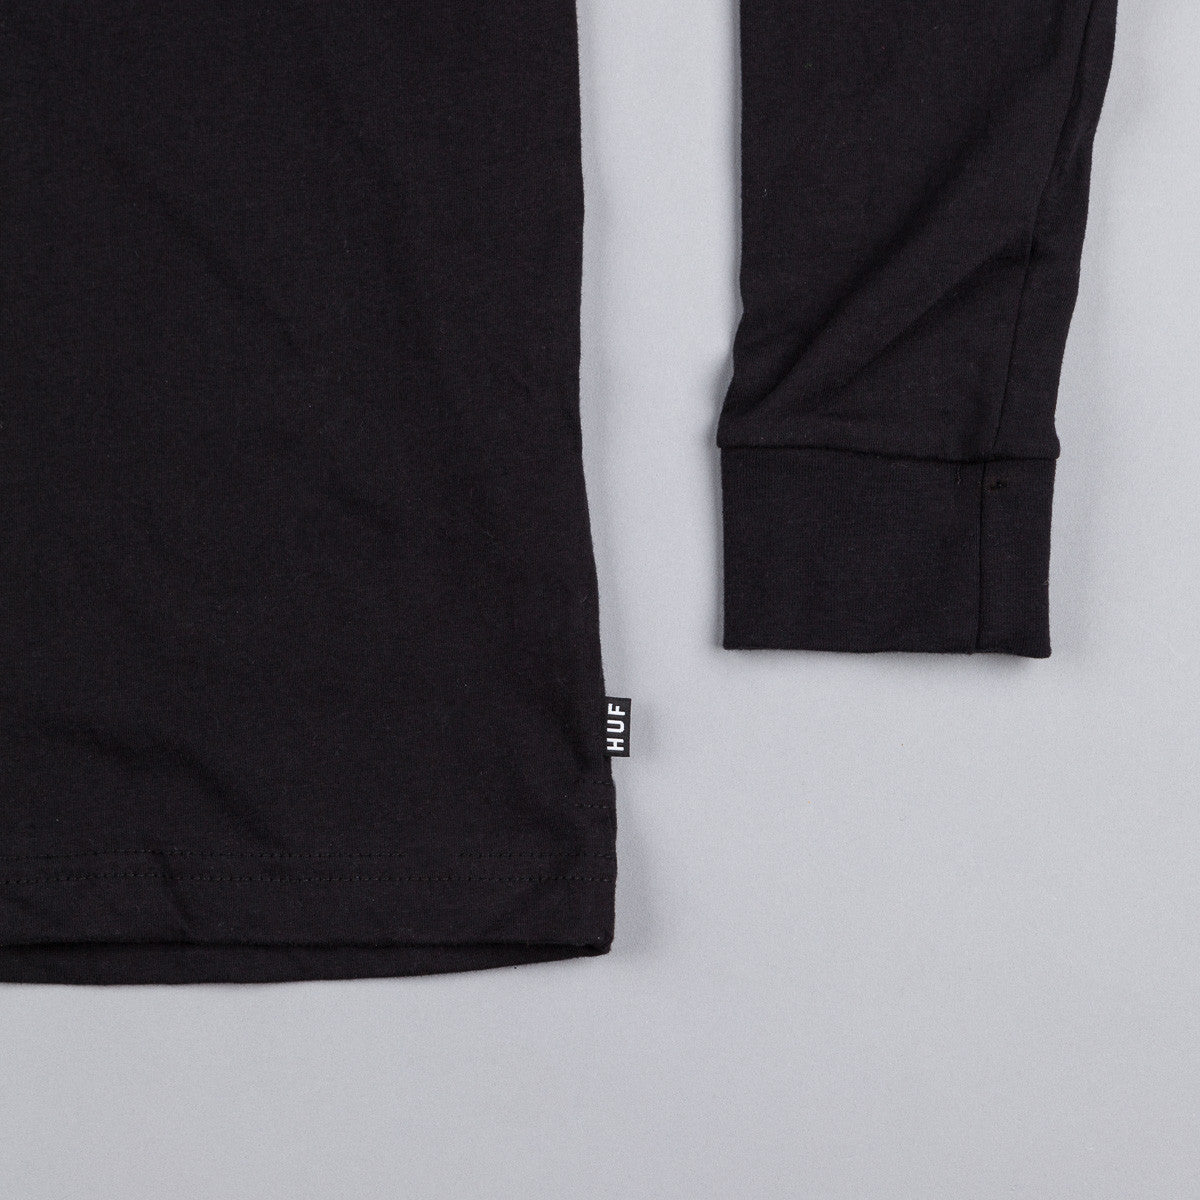 HUF Audible Long Sleeve T-Shirt - Black